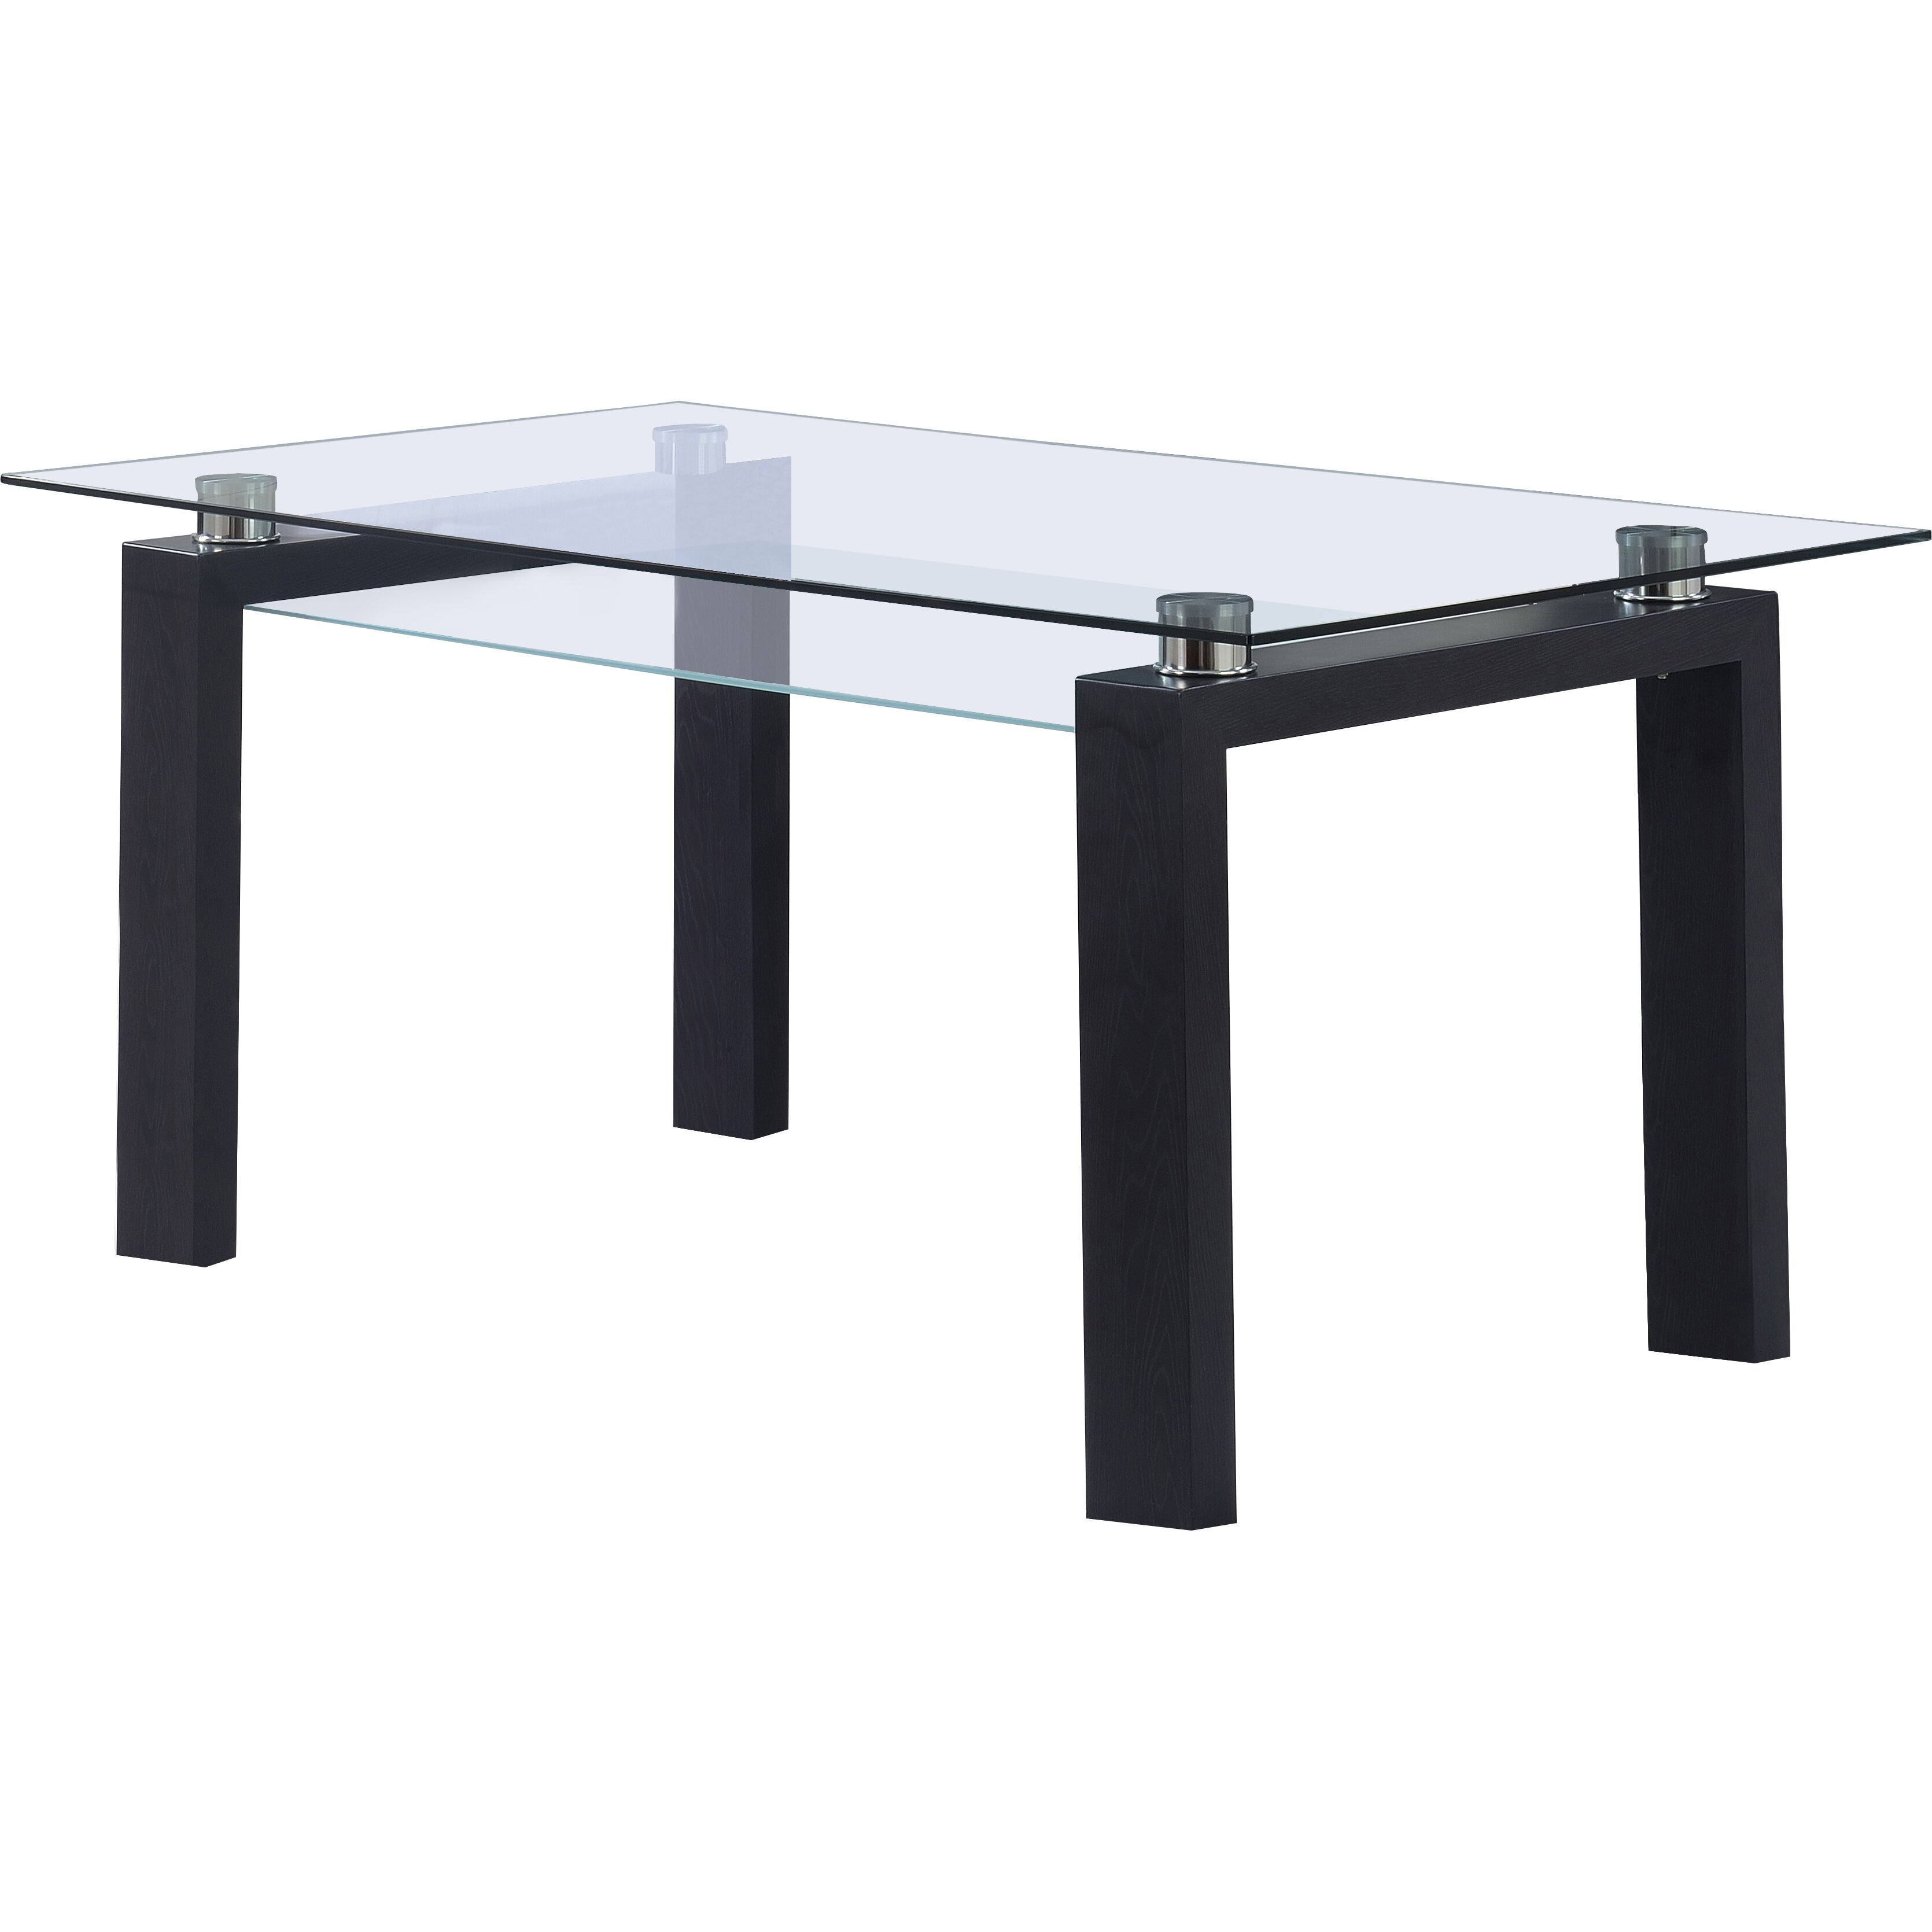 Wade logan gillespie dining table reviews wayfair for Montage stand